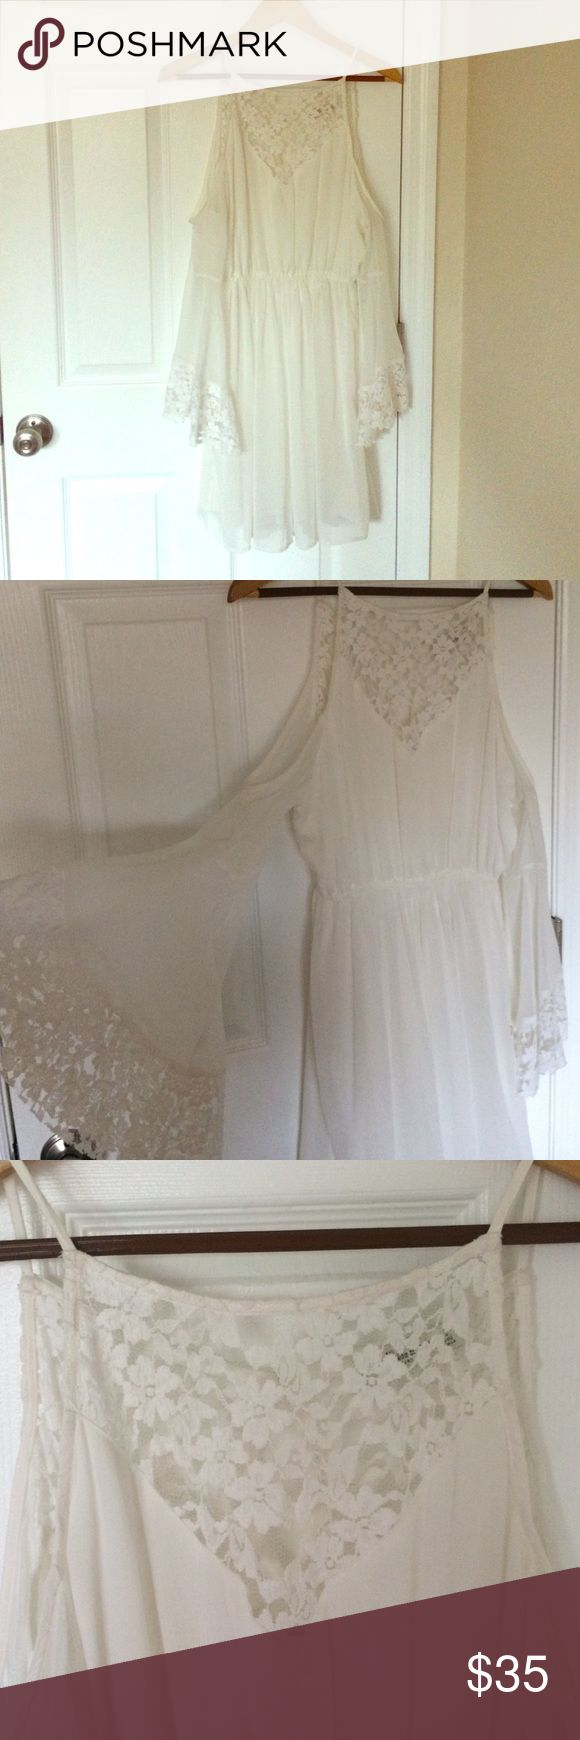 Abercrombie and Fitch white lace dress Short white chiffon with lace dress from Abercrombie and Fitch. Has some lace detail on the chest and sleeves. Sleeves are open shoulder and wide at the ends. Worn once. Abercrombie & Fitch Dresses Mini